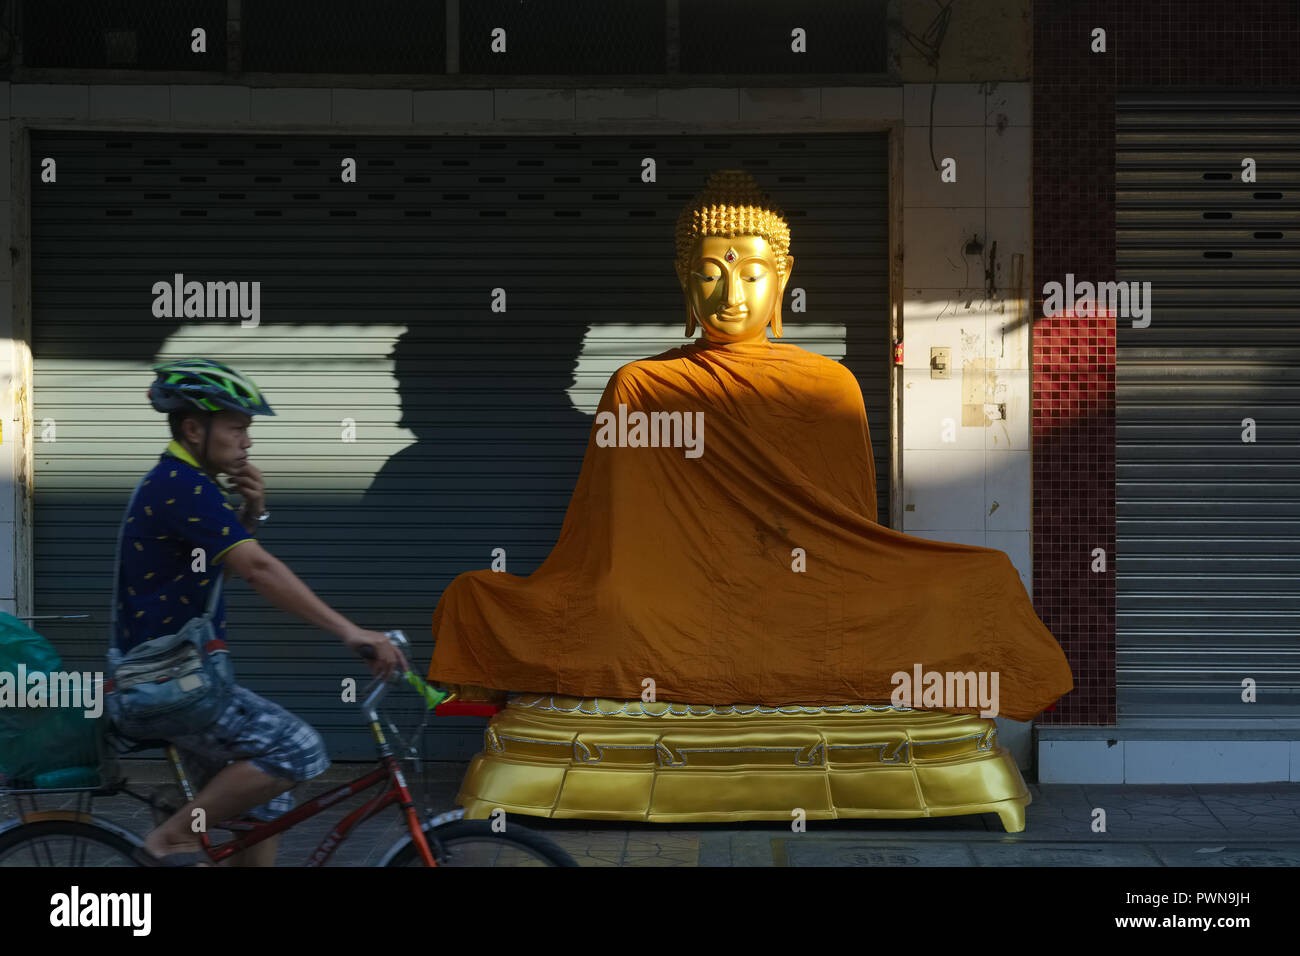 An early morning cyclist passing a Buddha statue placed in front of a shop for religious artifacts, in Bamrung Muang Road, Bangkok, Thailand - Stock Image